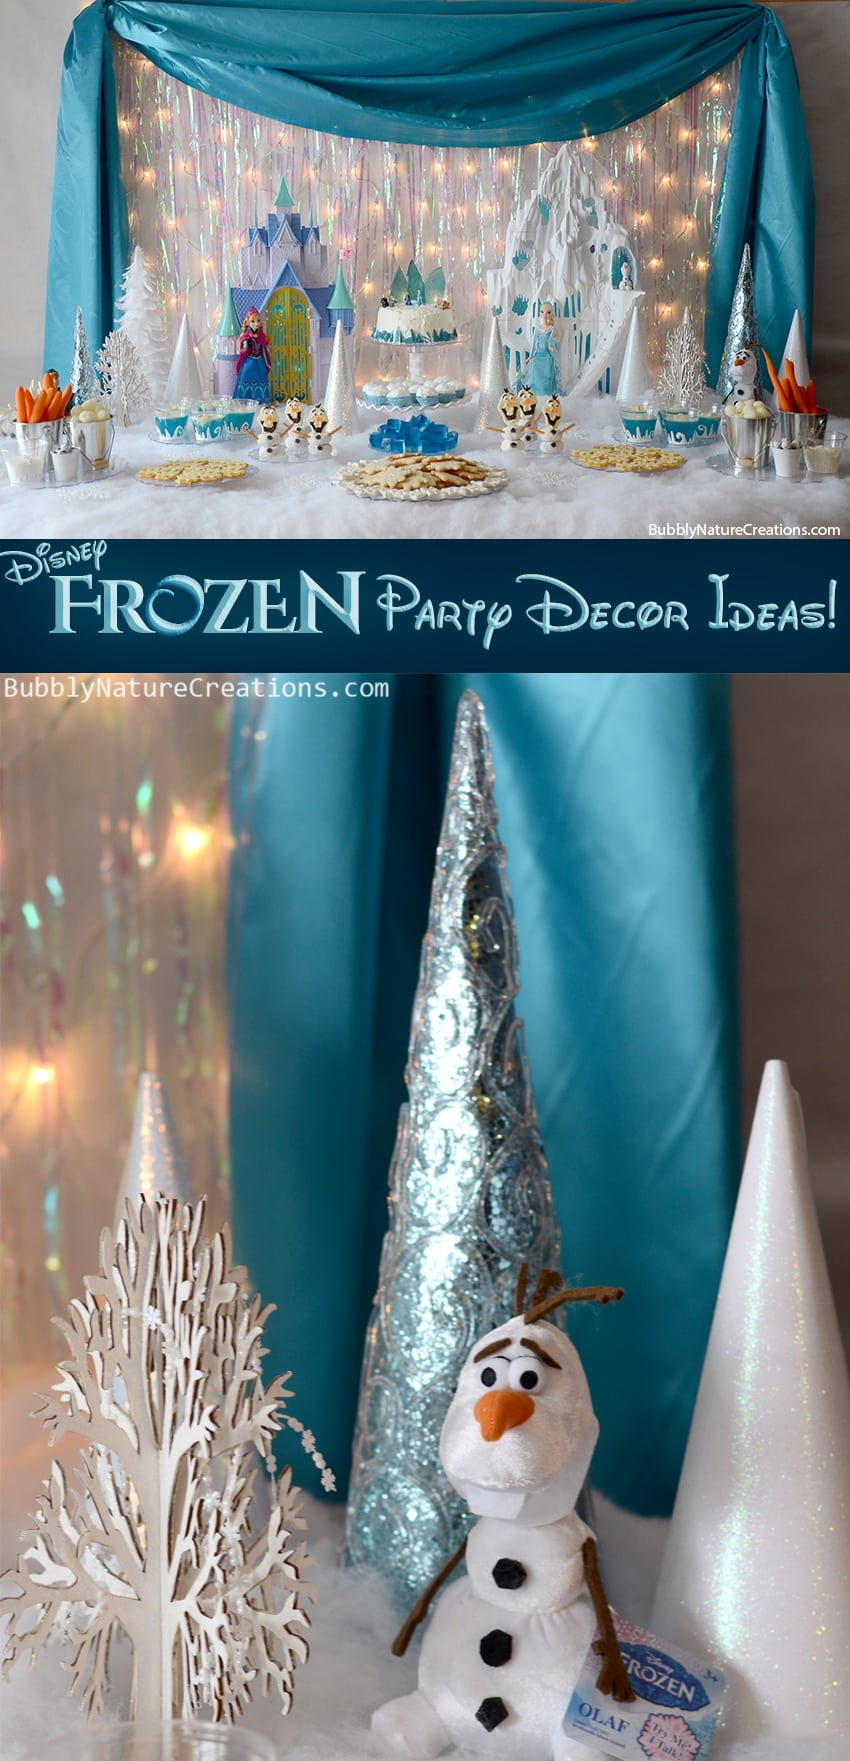 Disney Themed Party Decorations Images